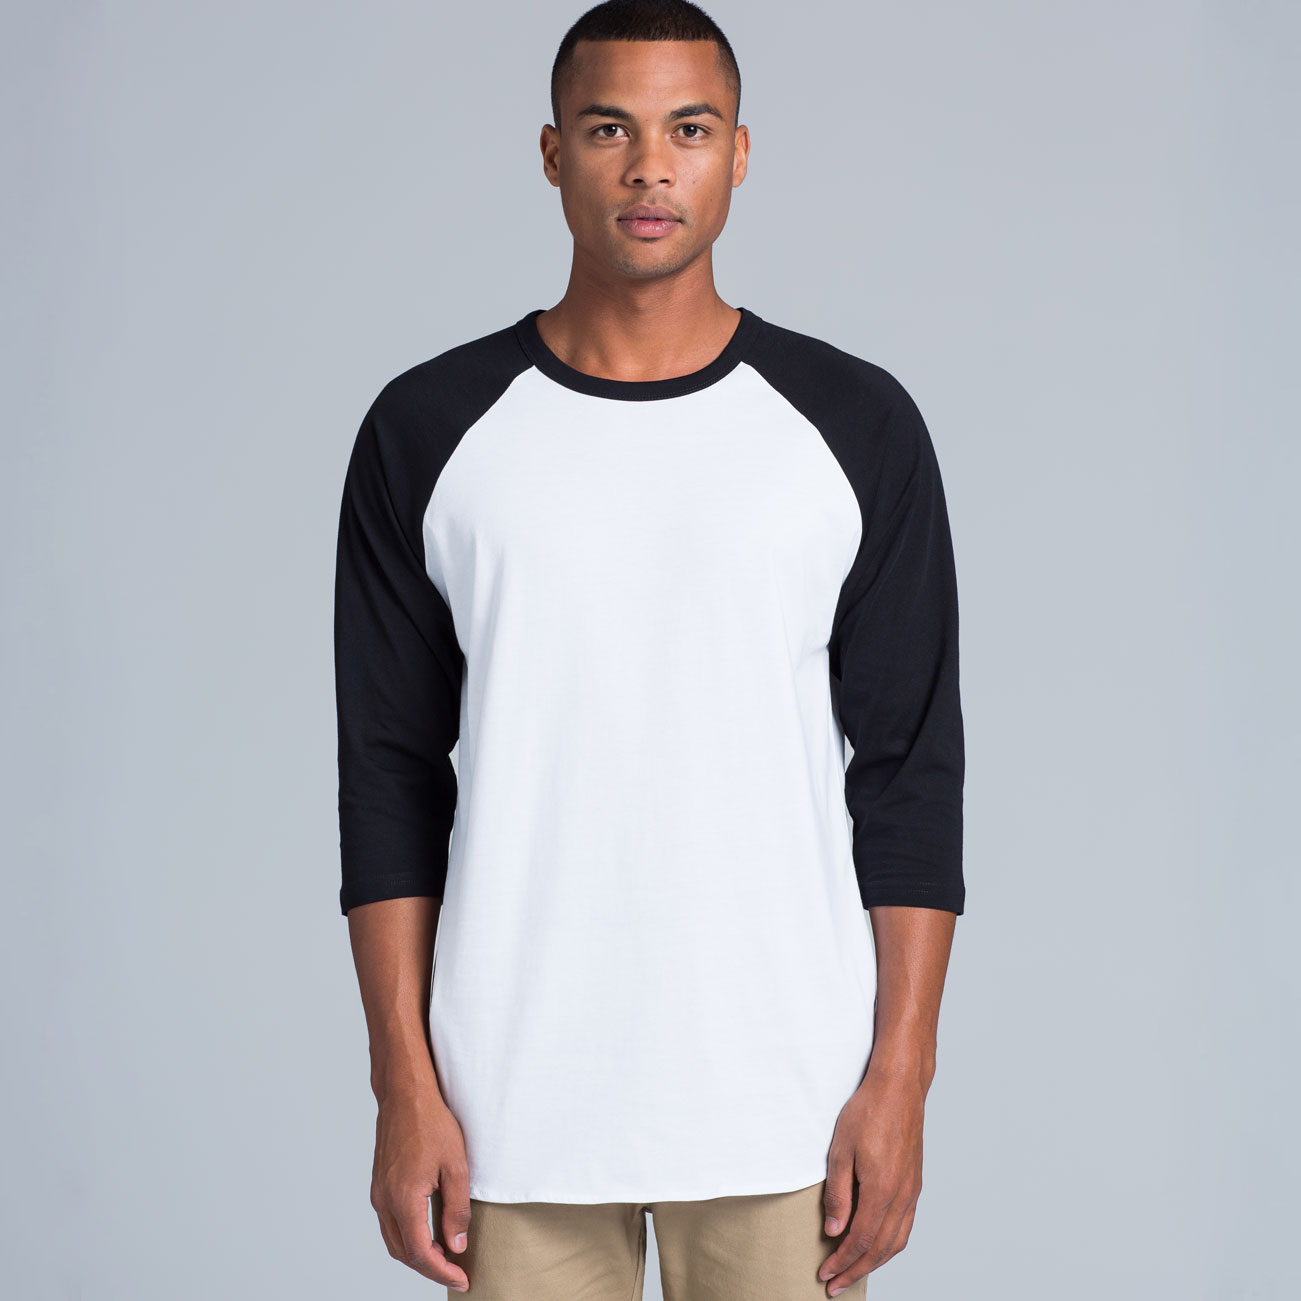 Mens 3 4 Sleeve Baseball T Shirt - BCD Tofu House 9f6c8933e